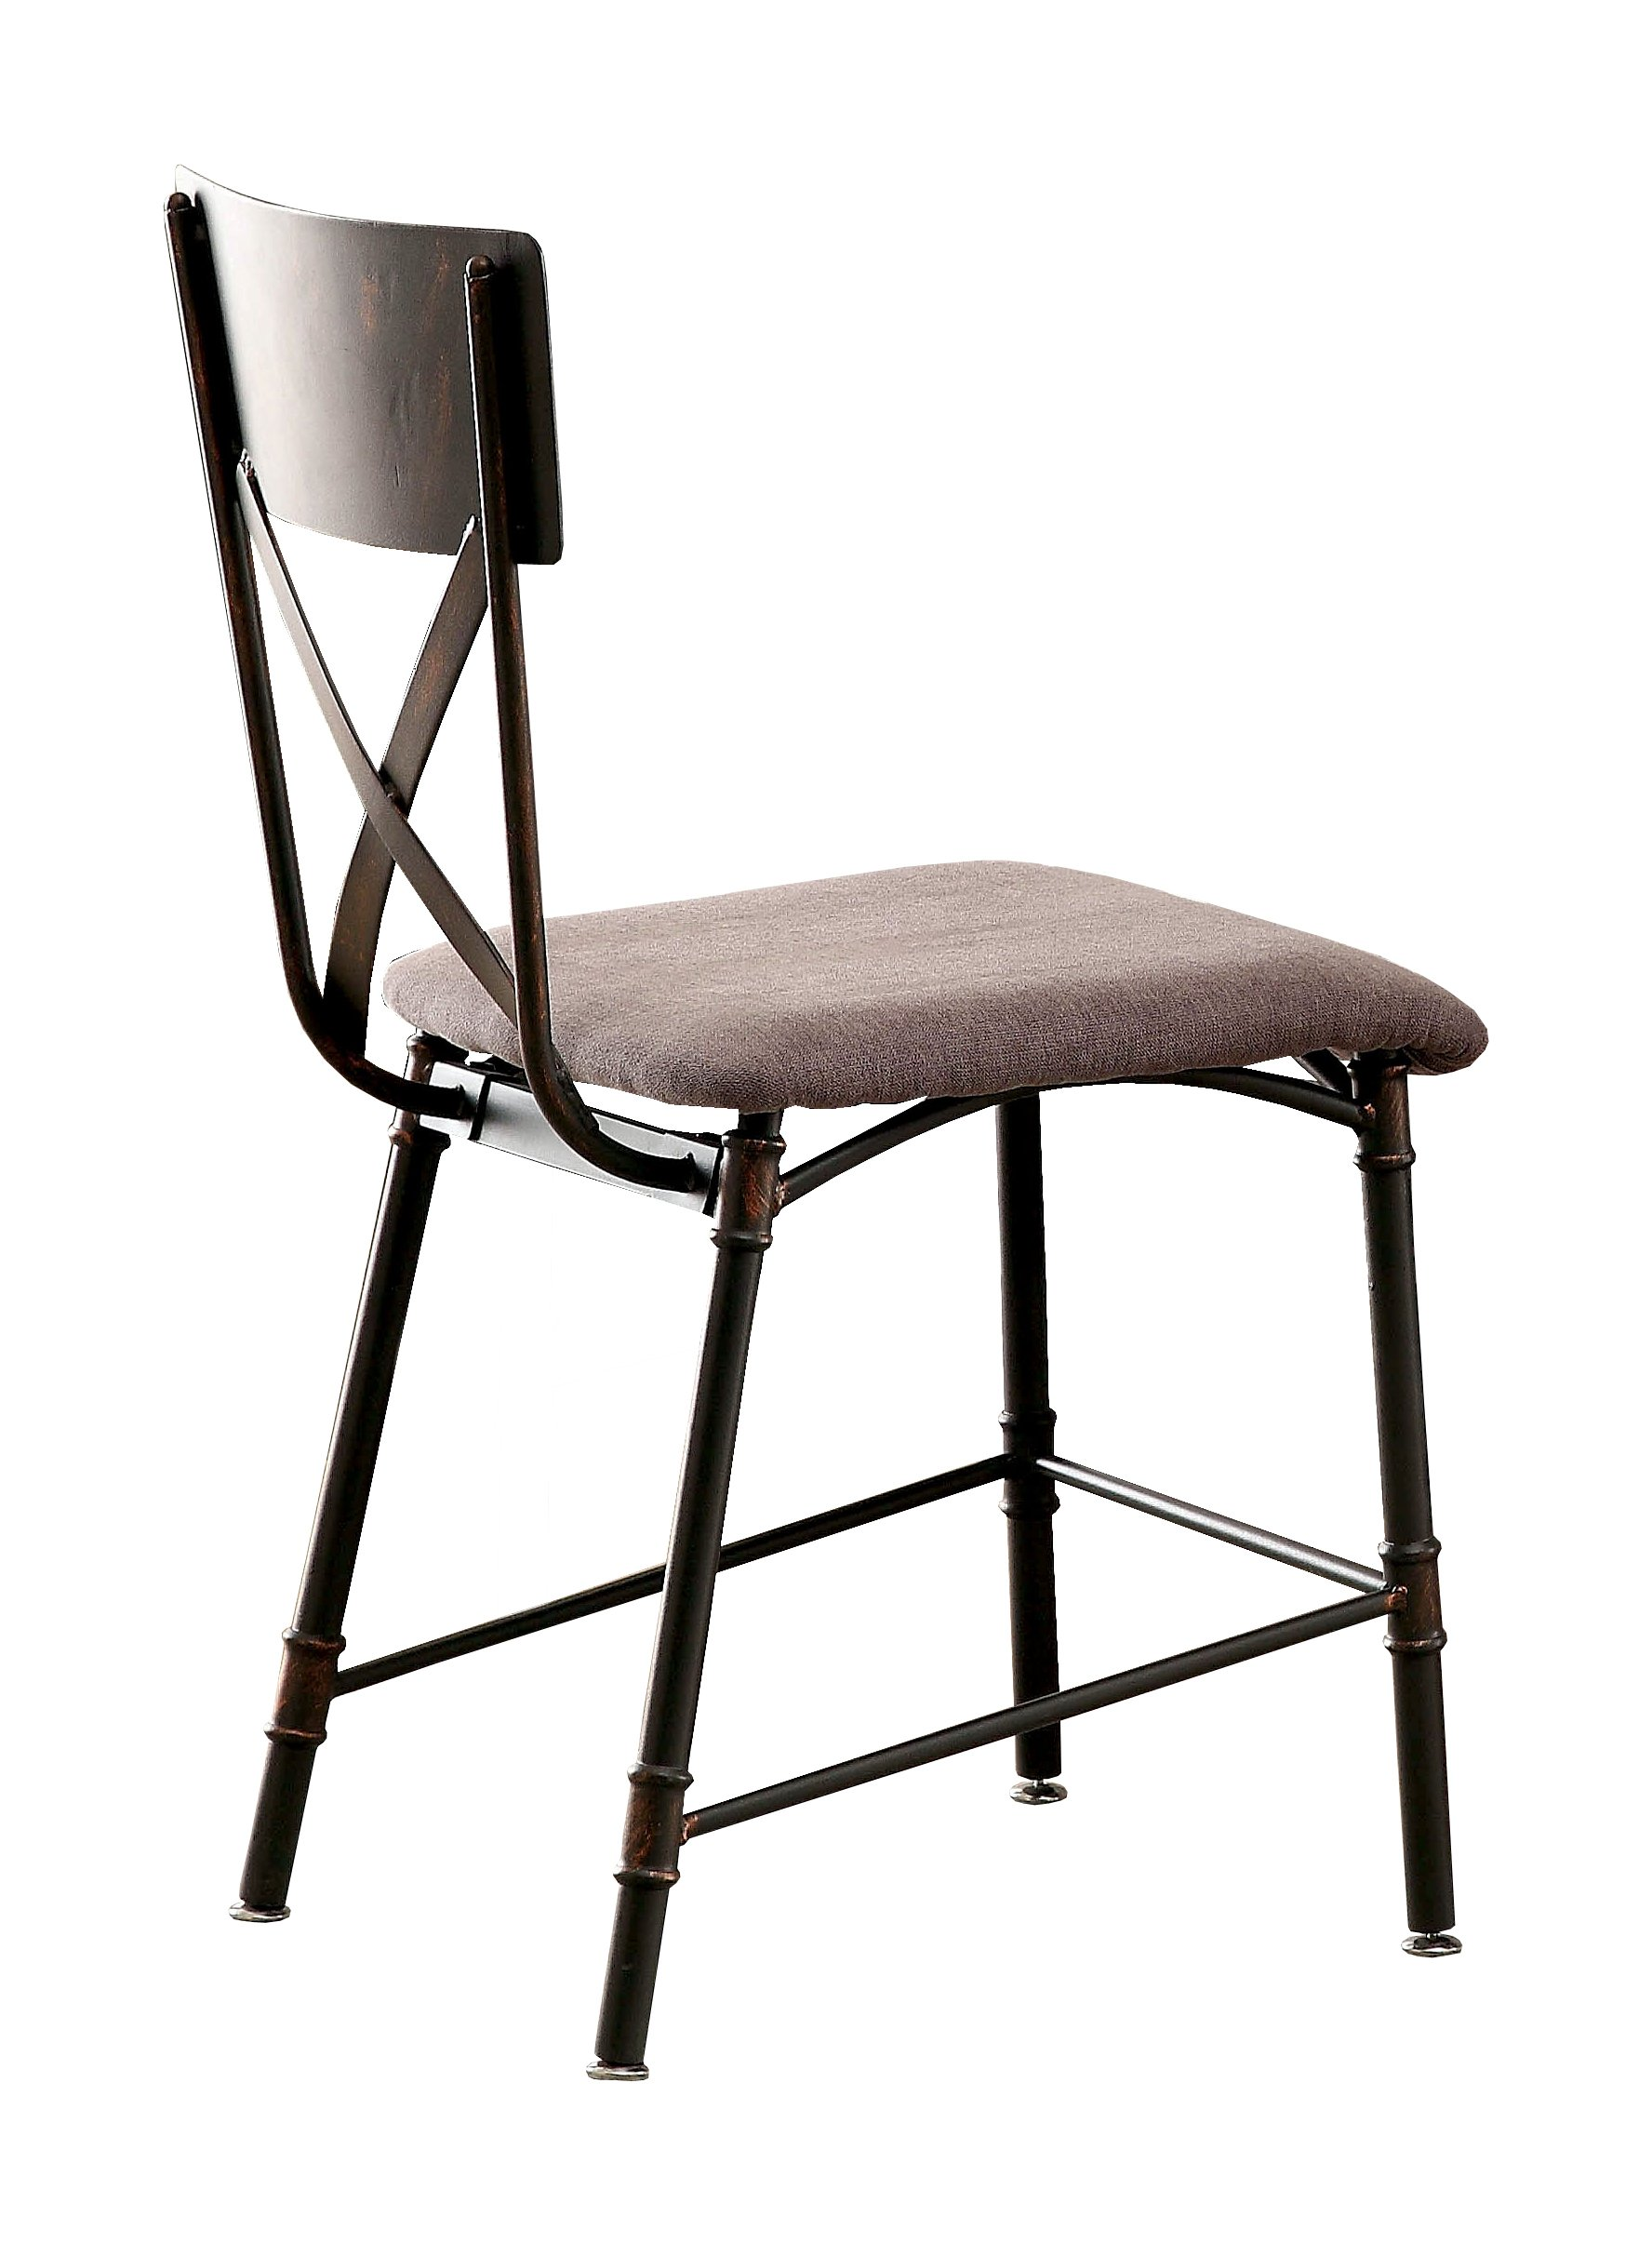 HOMES: Inside + Out IDF-AC6913 Limonite Industrial Chair, Antique Black